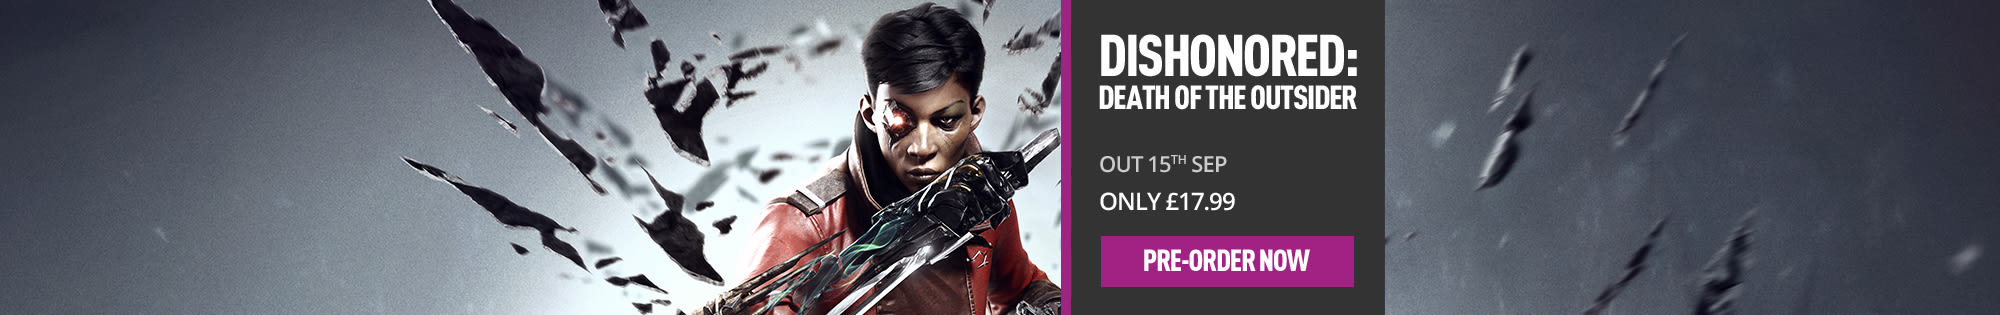 Dishonored: Death of the Outsider - Homepage banner